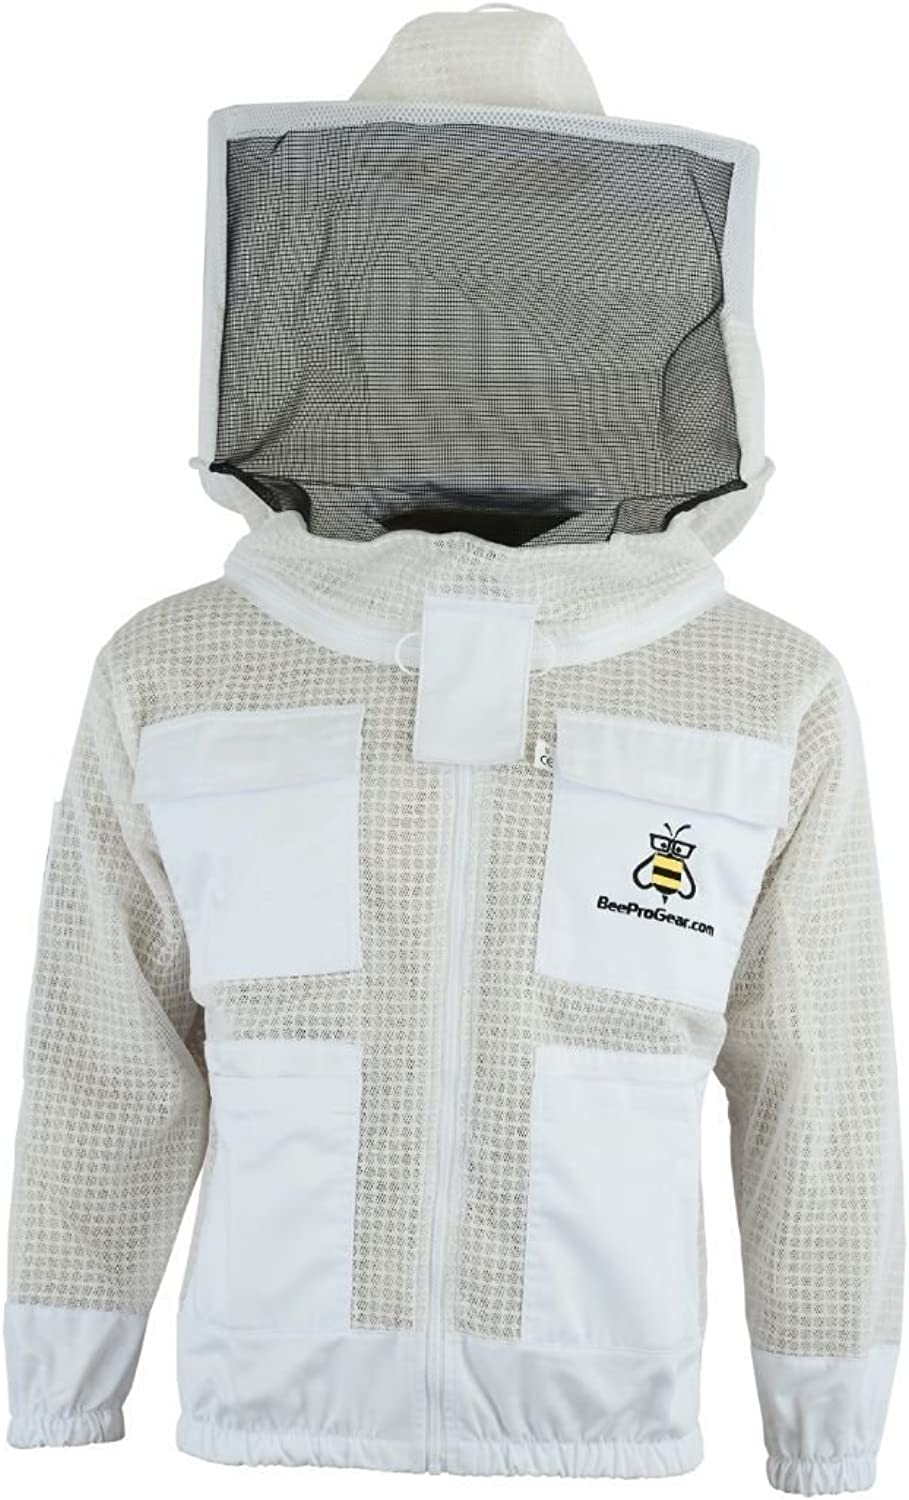 Bee Safety 3 Layer Safety Unisex White Fabric Mesh Beekeeping Jacket Beekeeping Round Veil Predective Clothing Beekeeping Clothing Beekeeping Predective Clothing Ventilated Bee